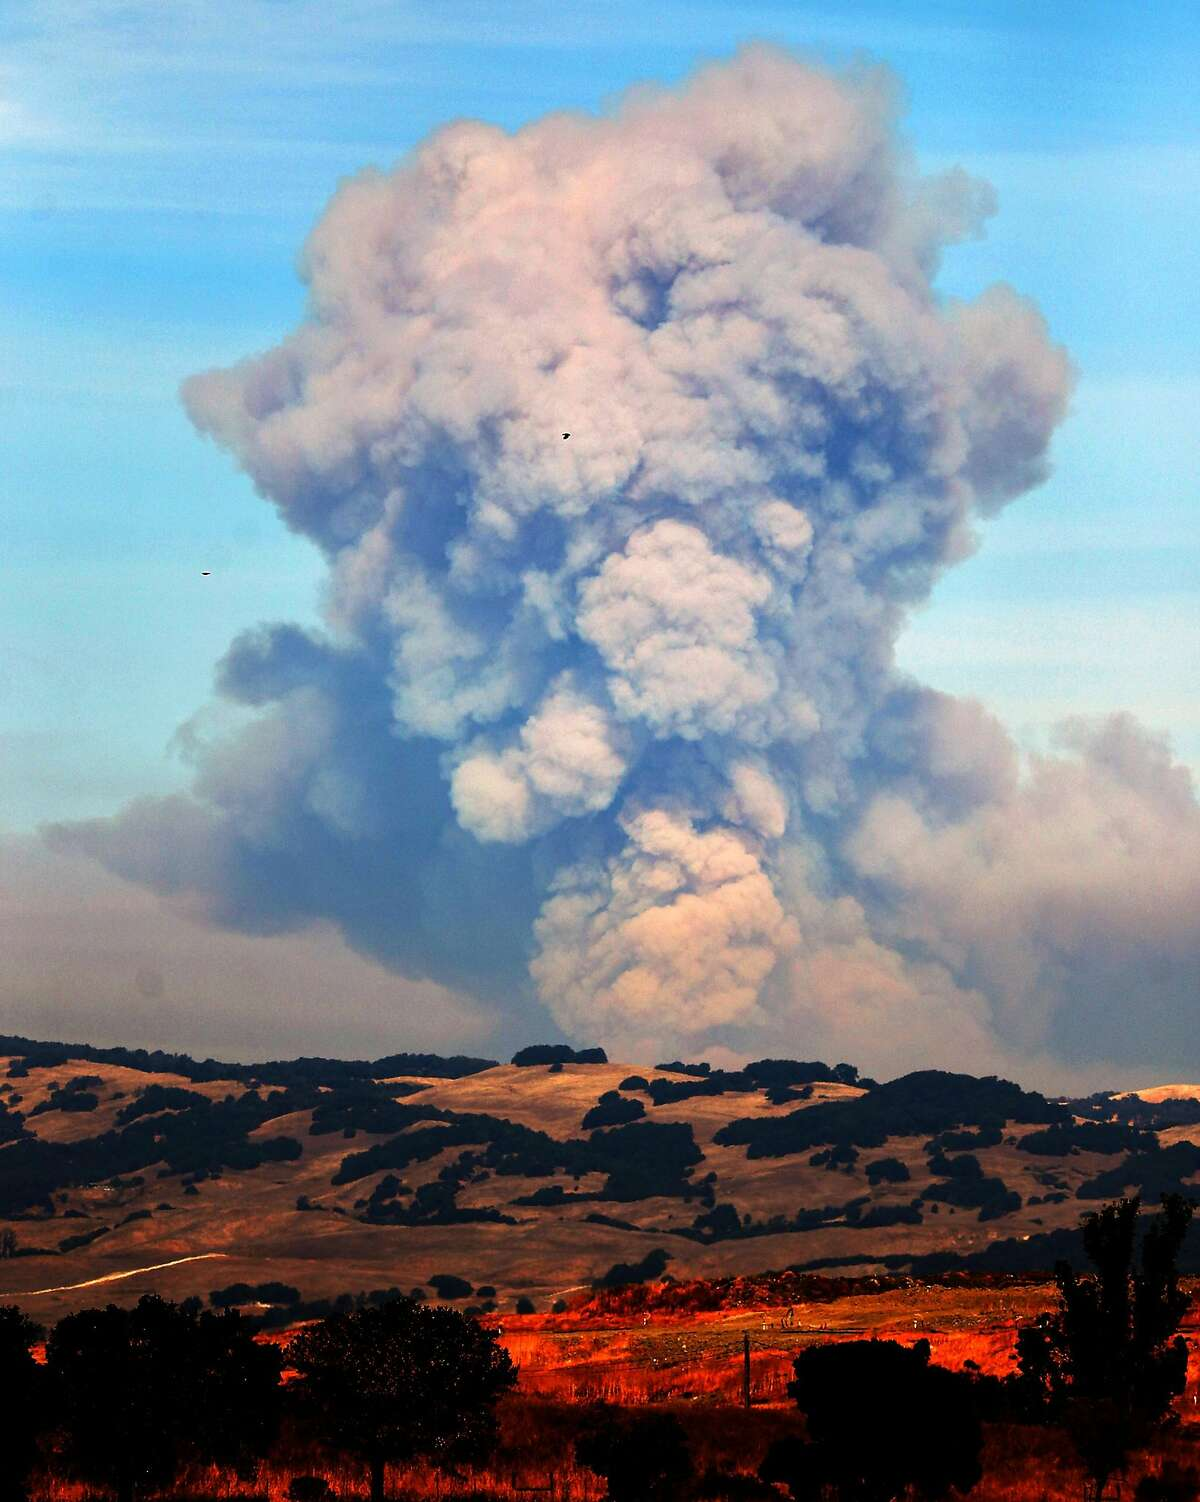 A large plume of smoke rises above the mountains between Napa and Sonoma, Calif., on Sunday, October 15, 2017.